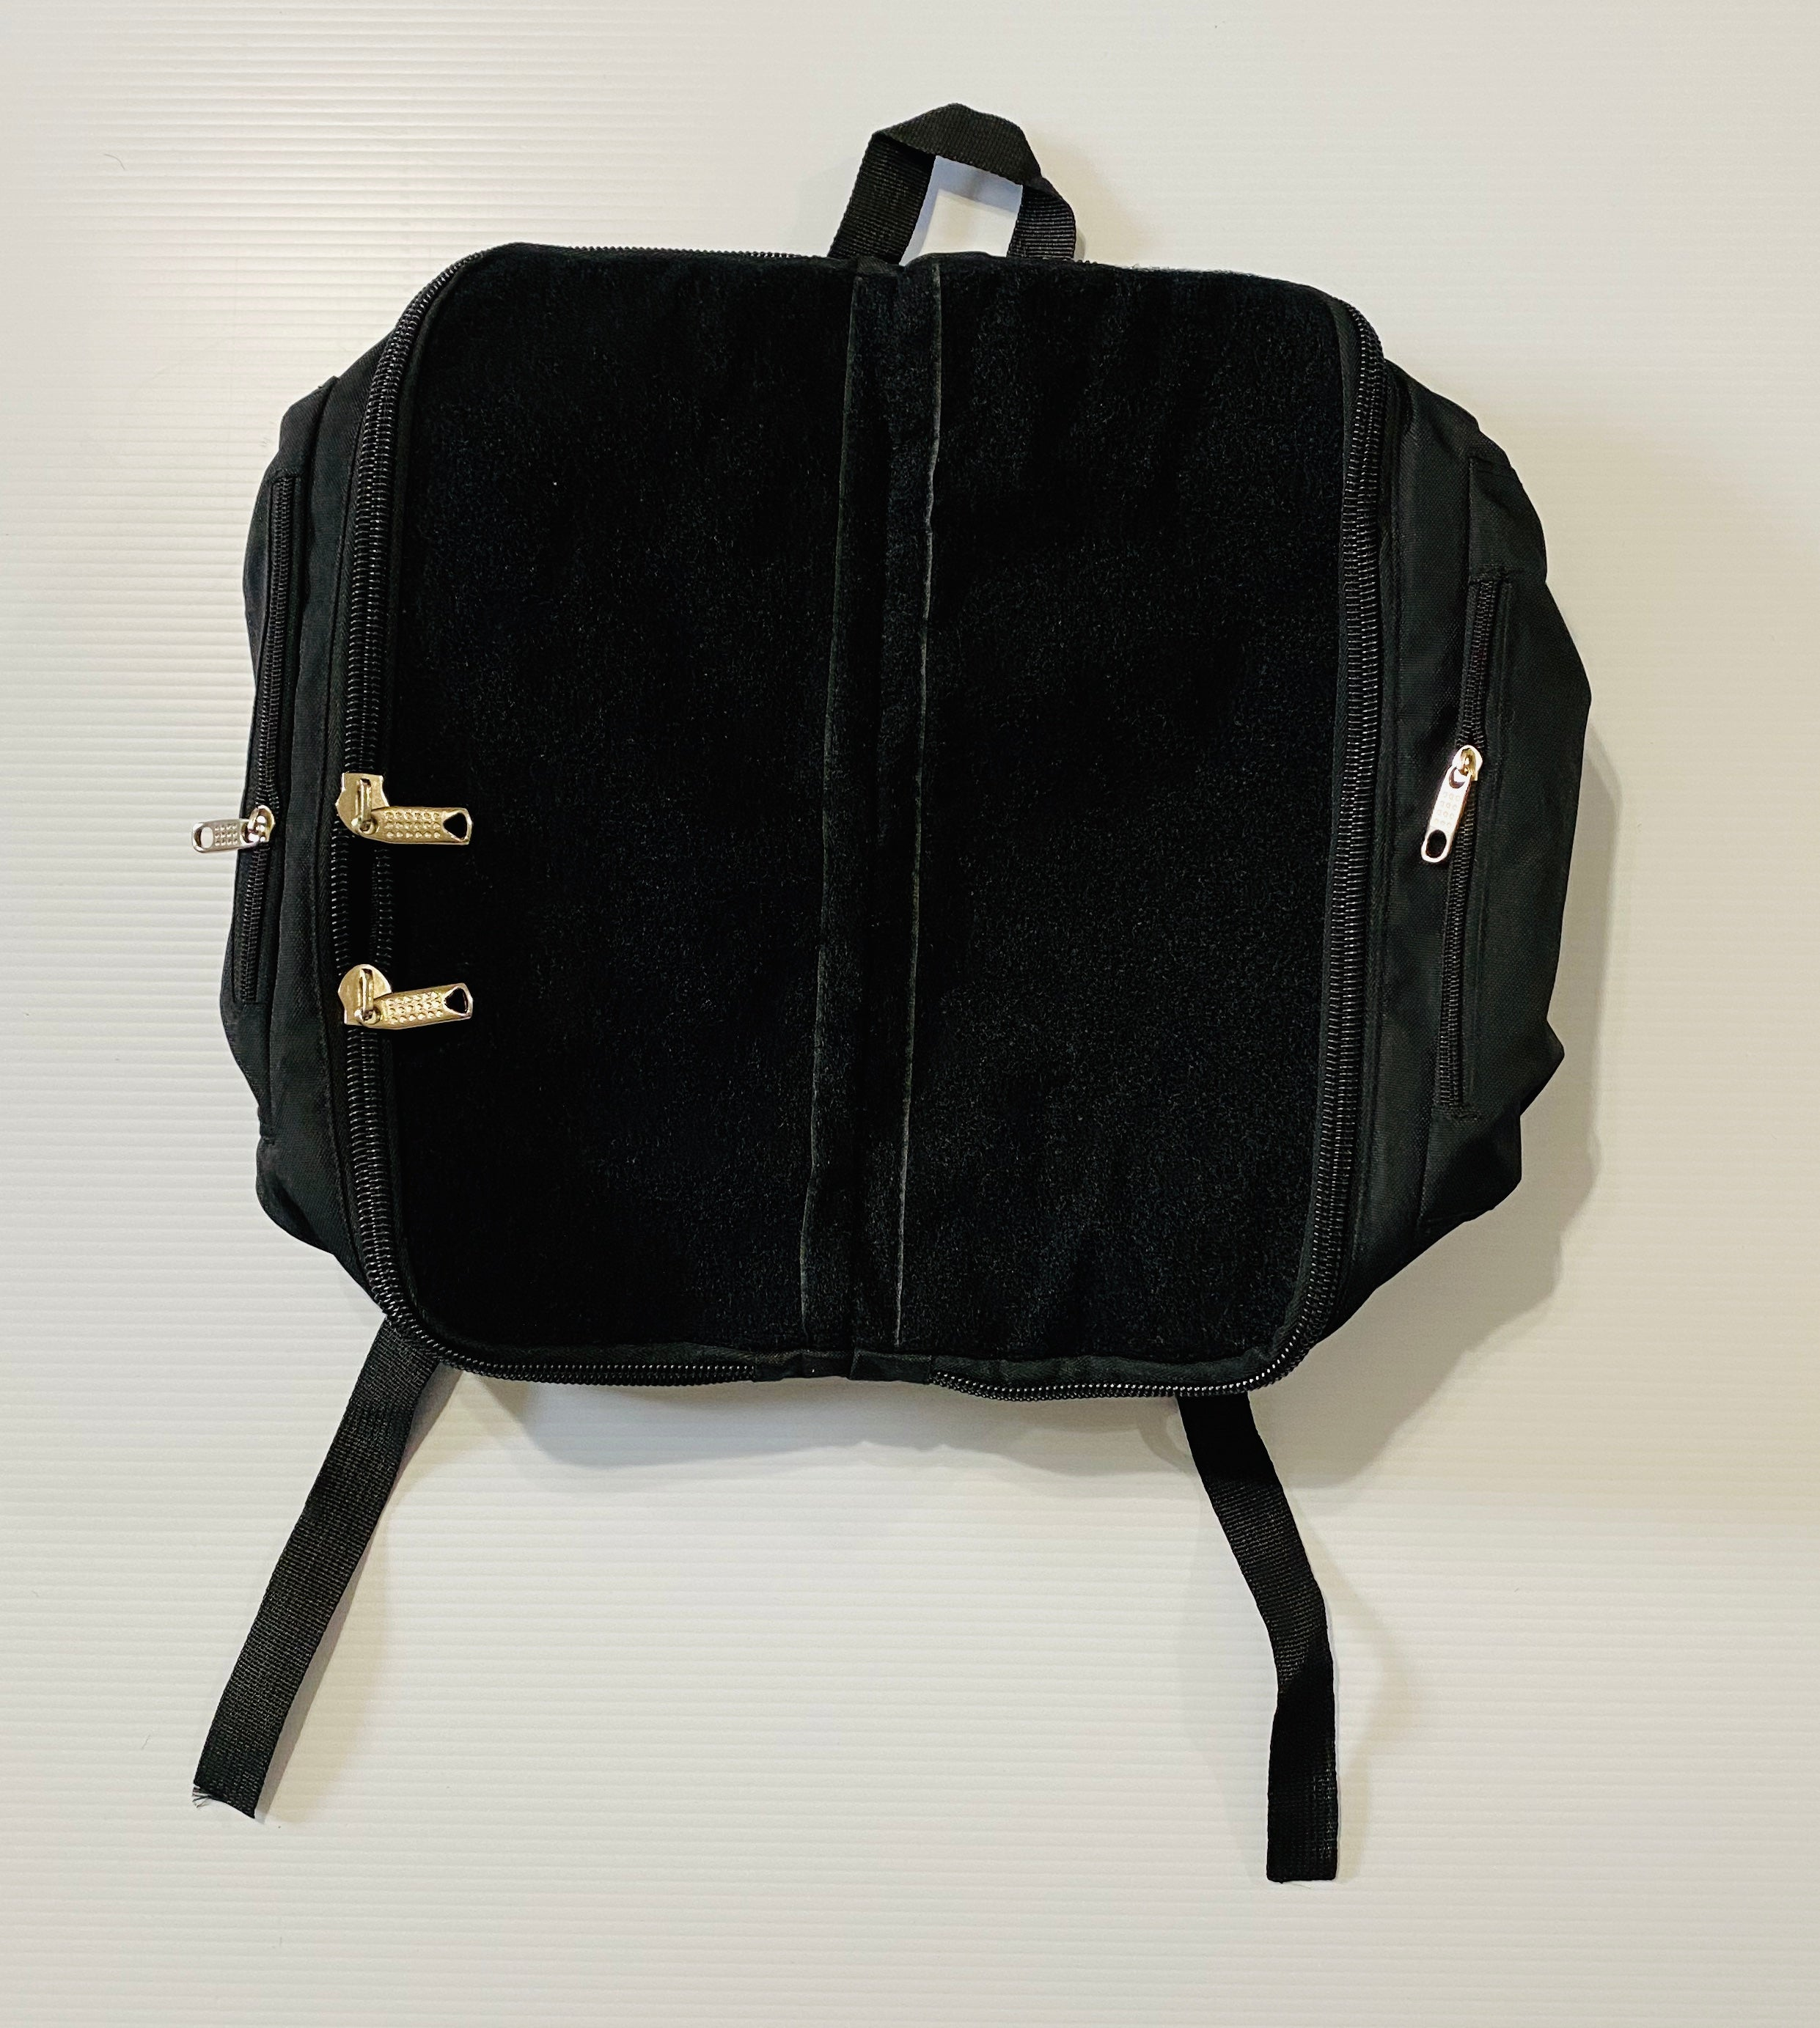 Velcro Carrying Bag